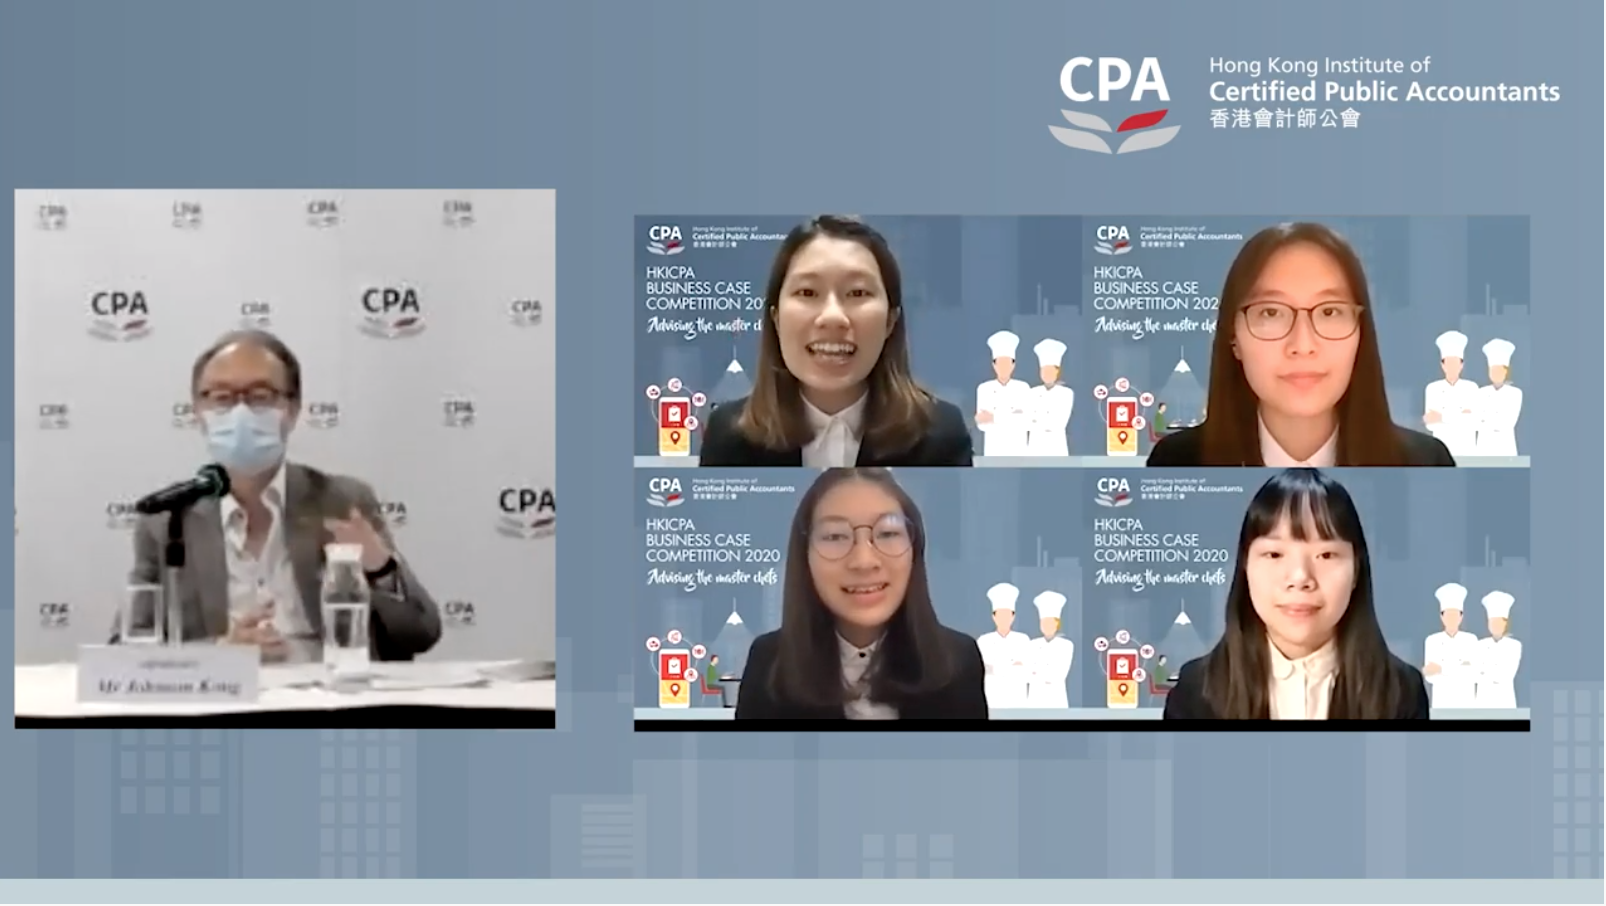 HKICPA Business Case Competition